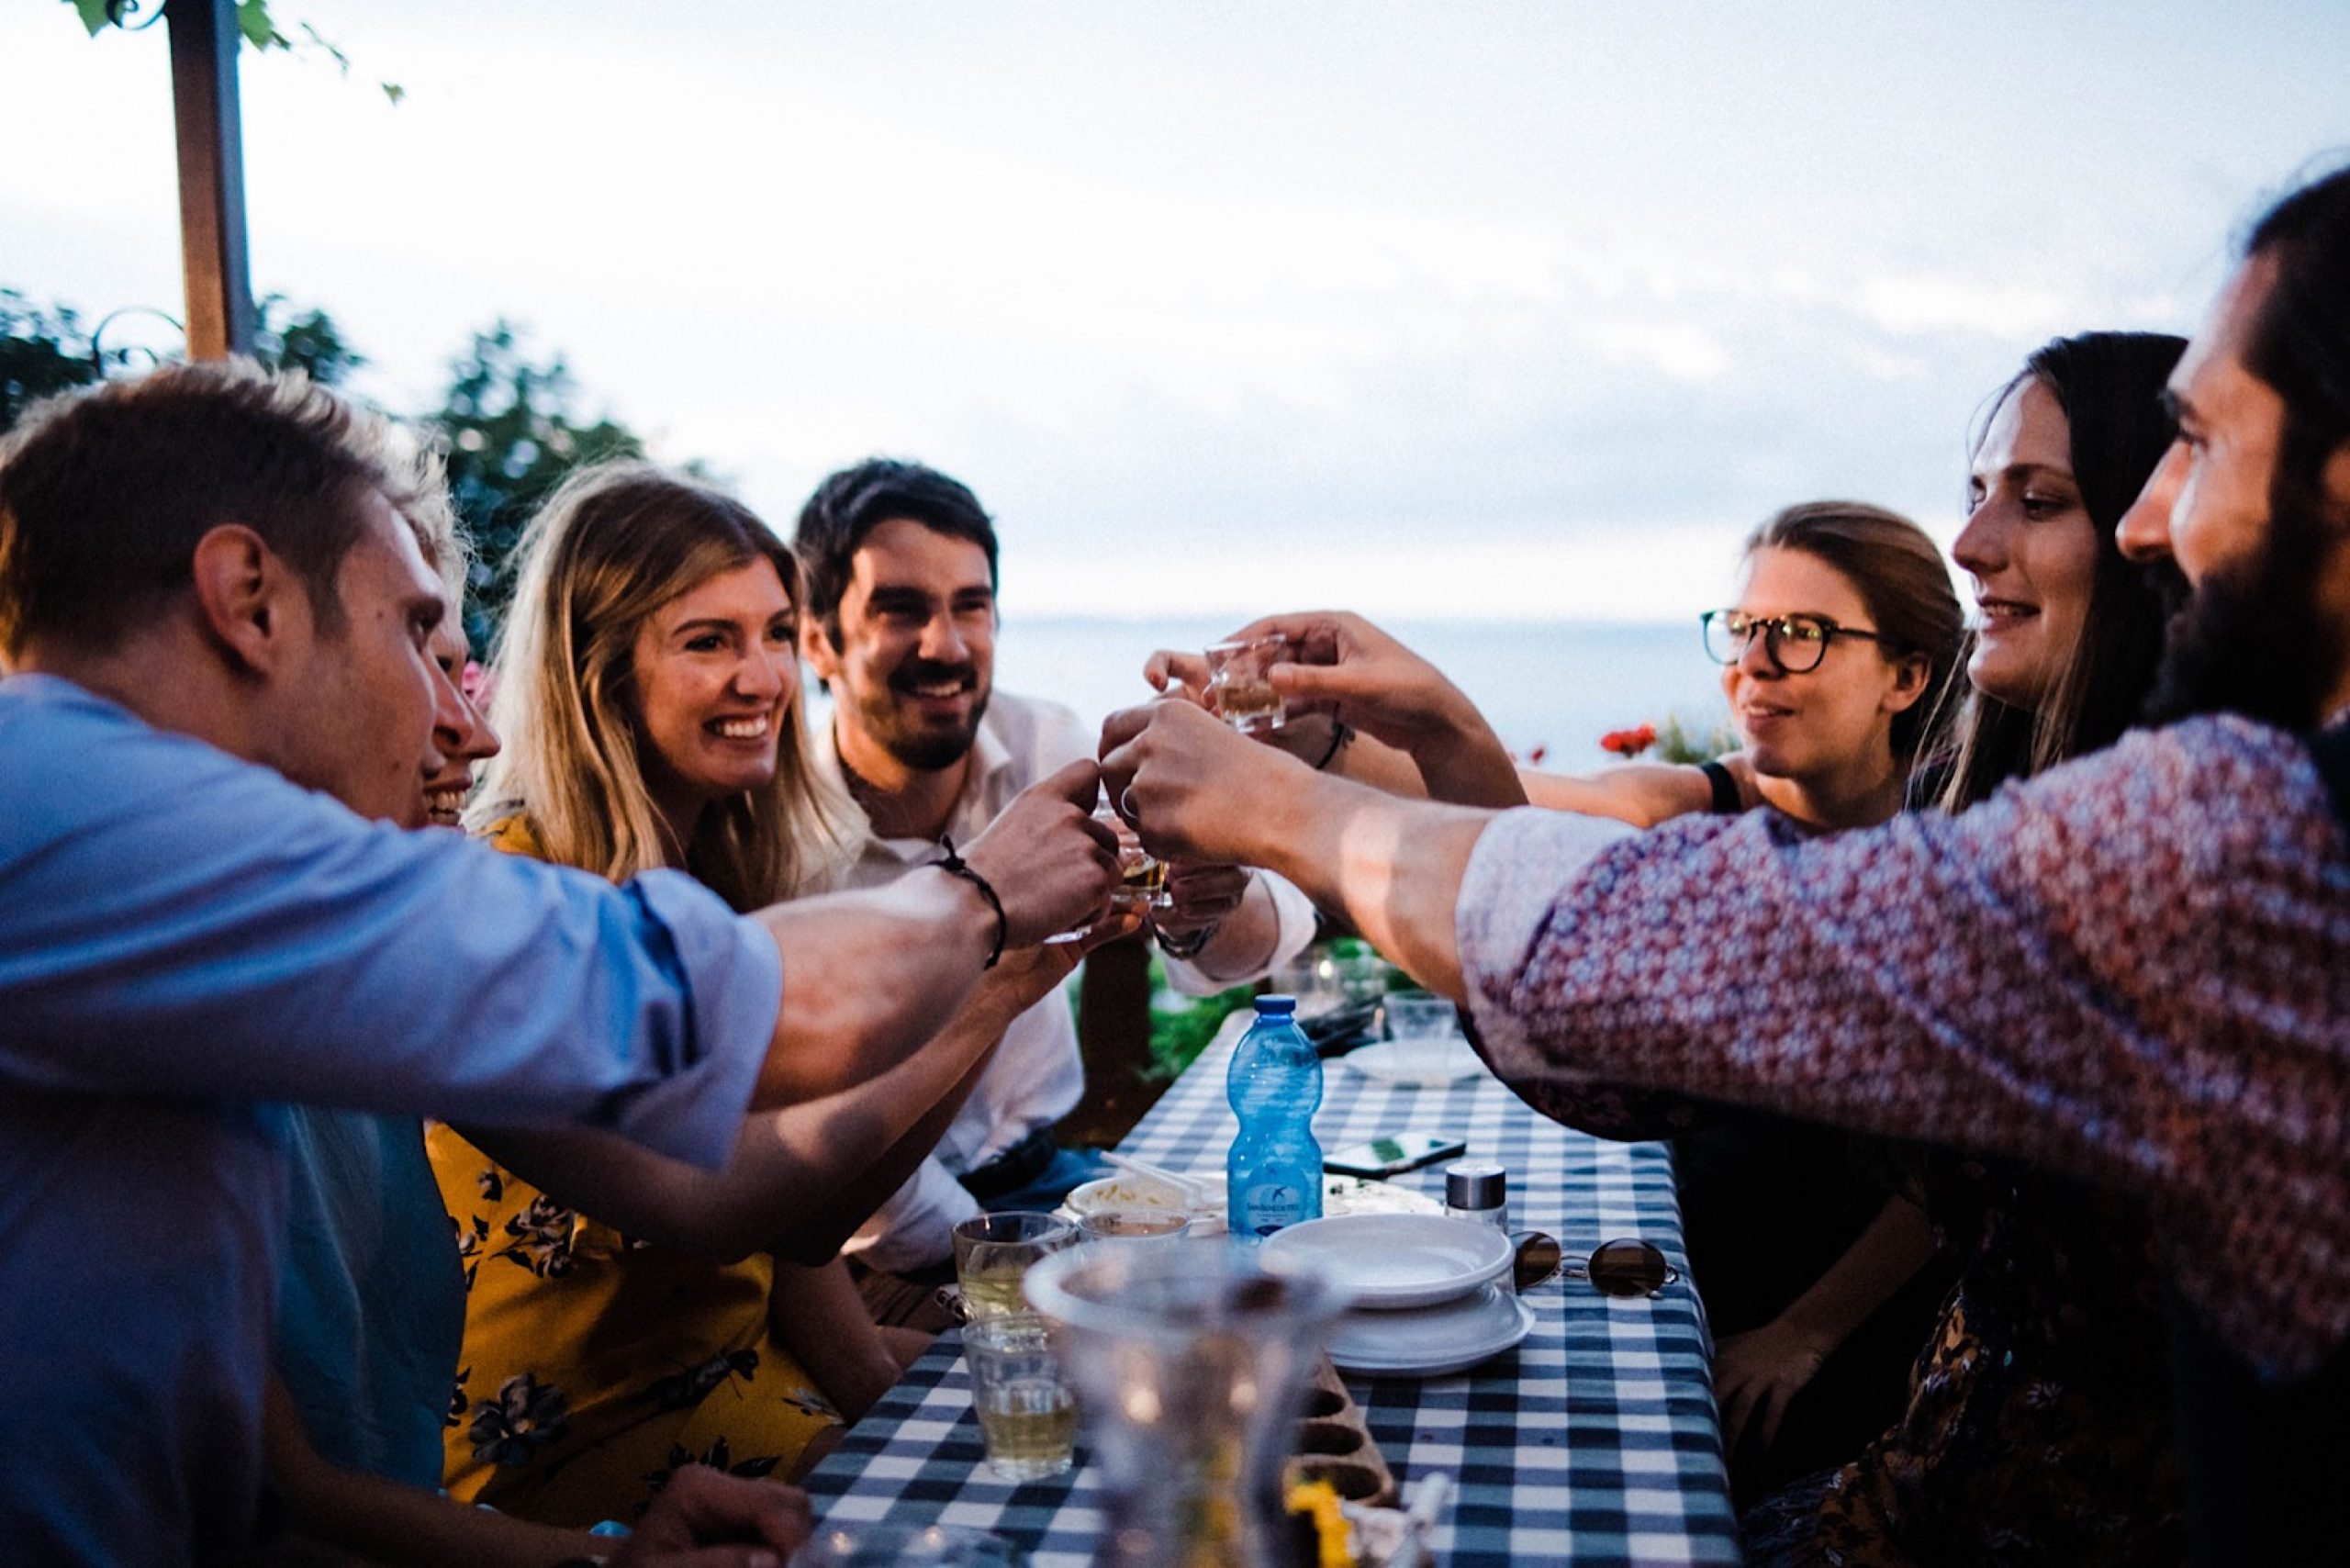 A group of destination wedding guests cheer with grappa shots, at an Osmiza in Trieste, looking out over the Adriatic Sea.